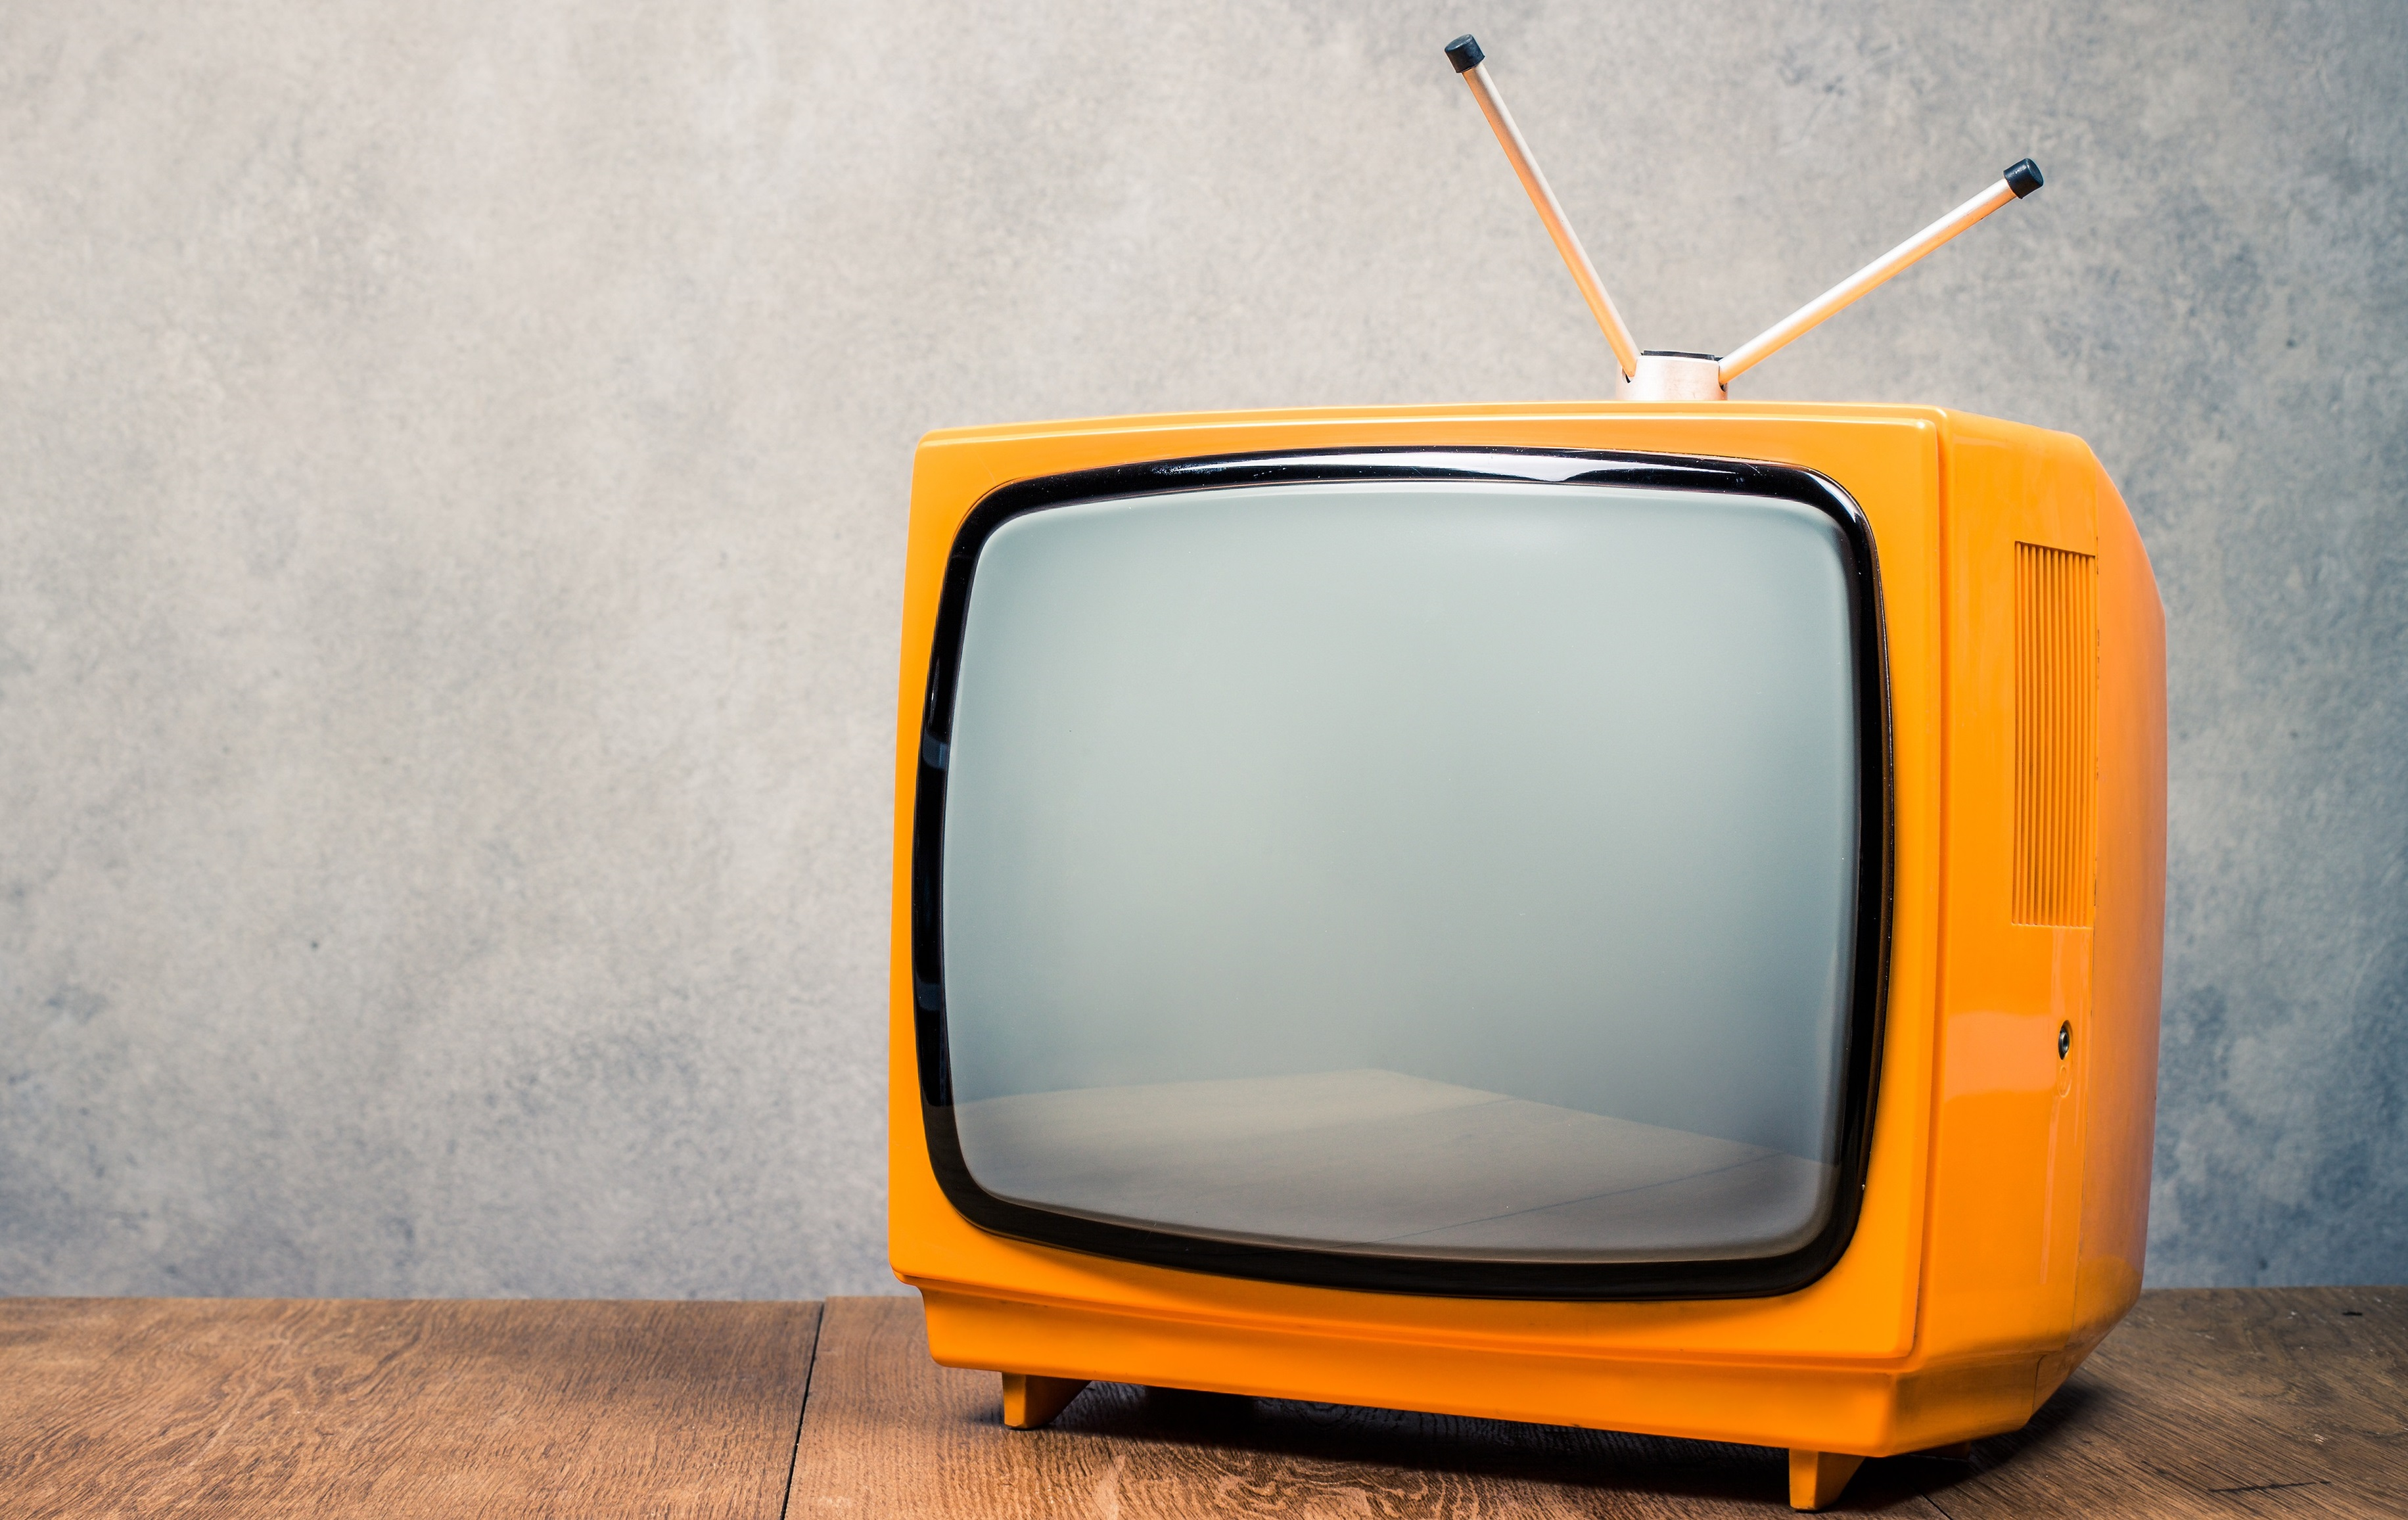 The Seasonal Nature of TV Viewing